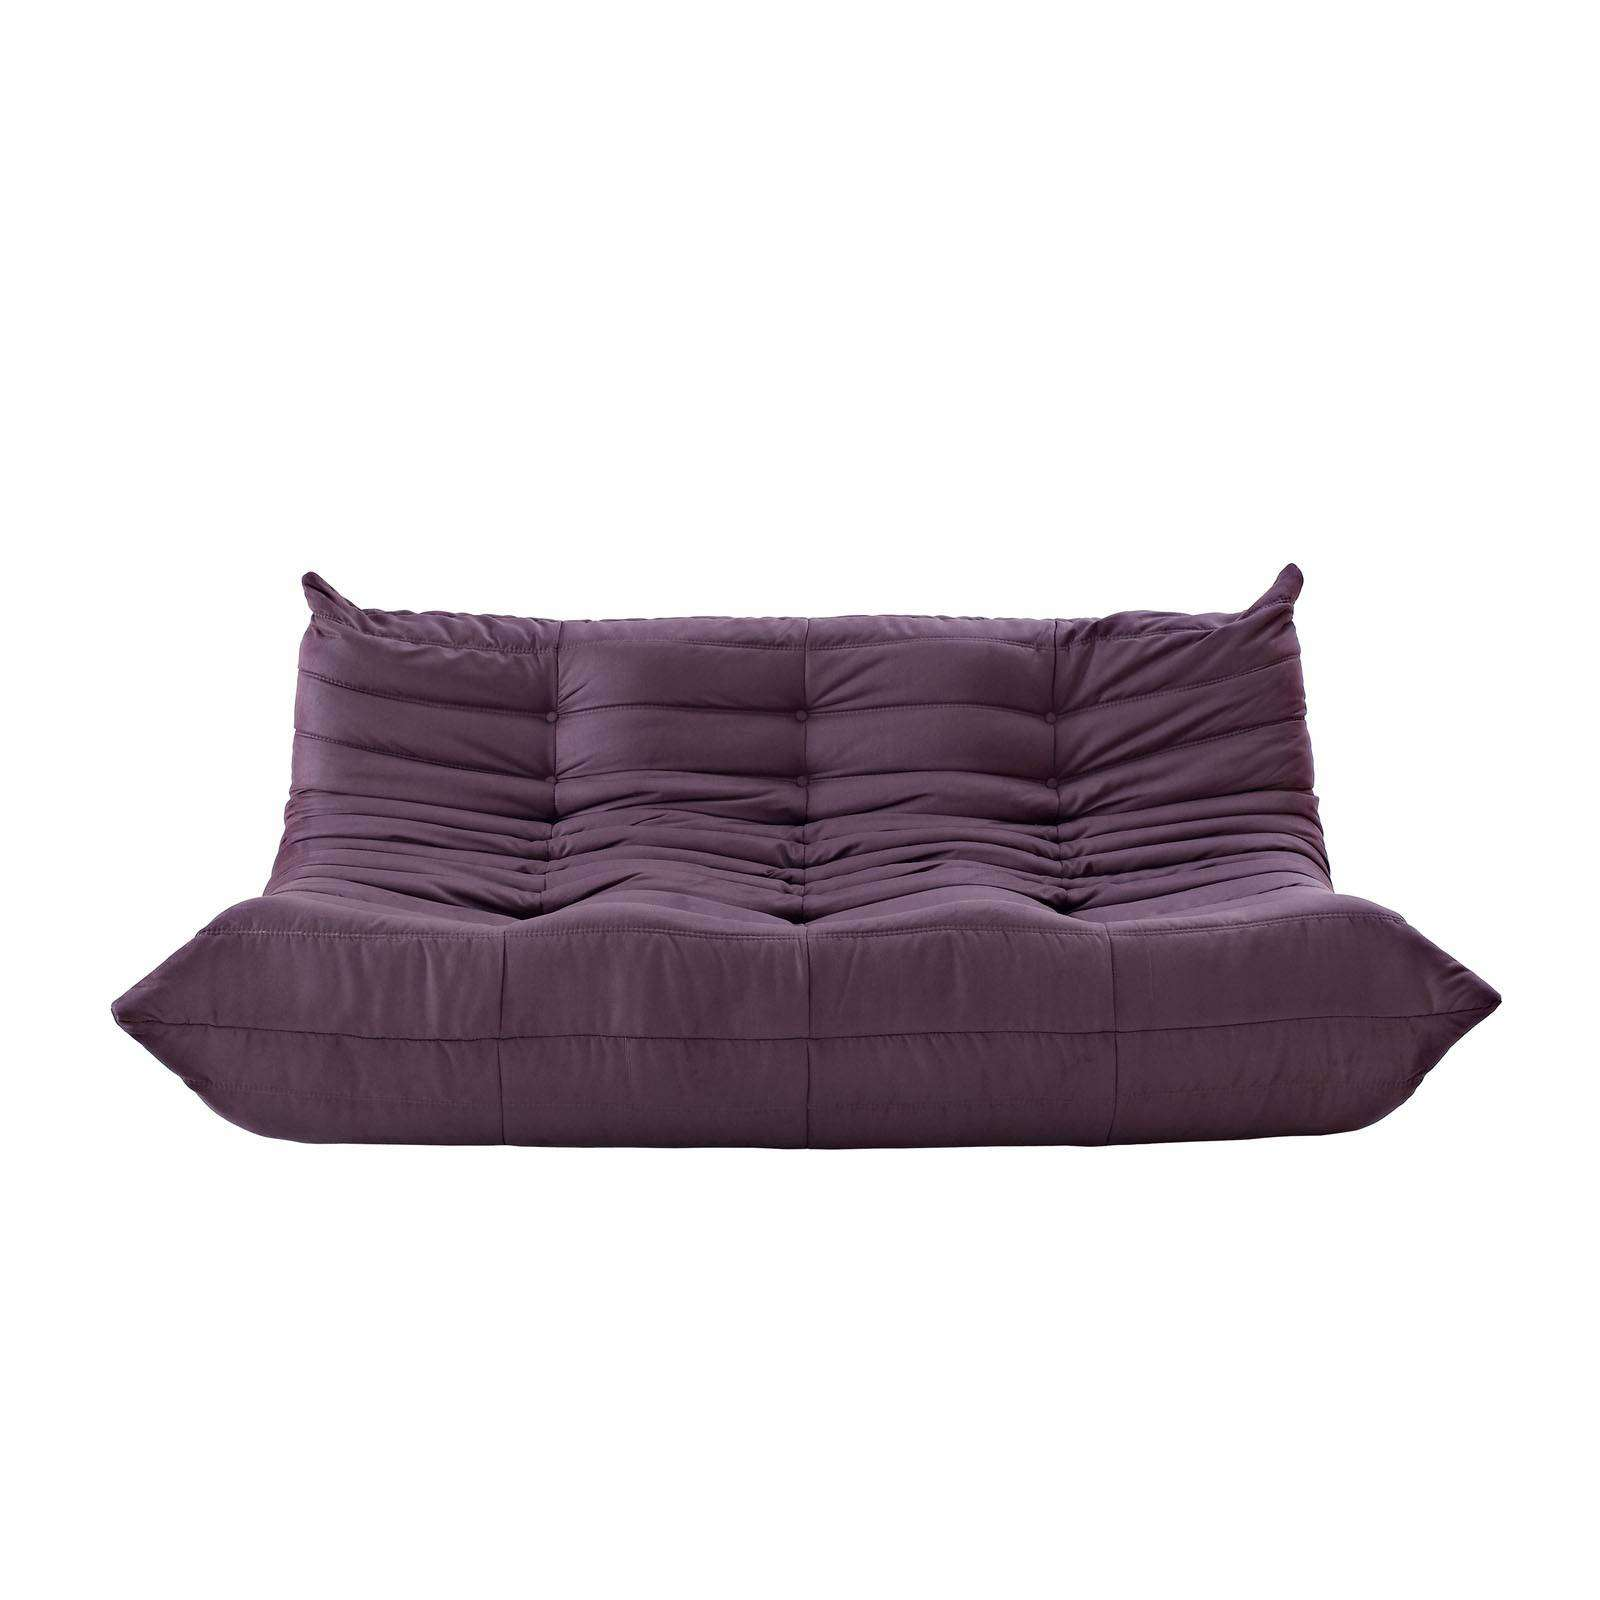 Waverunner Sofa Couch